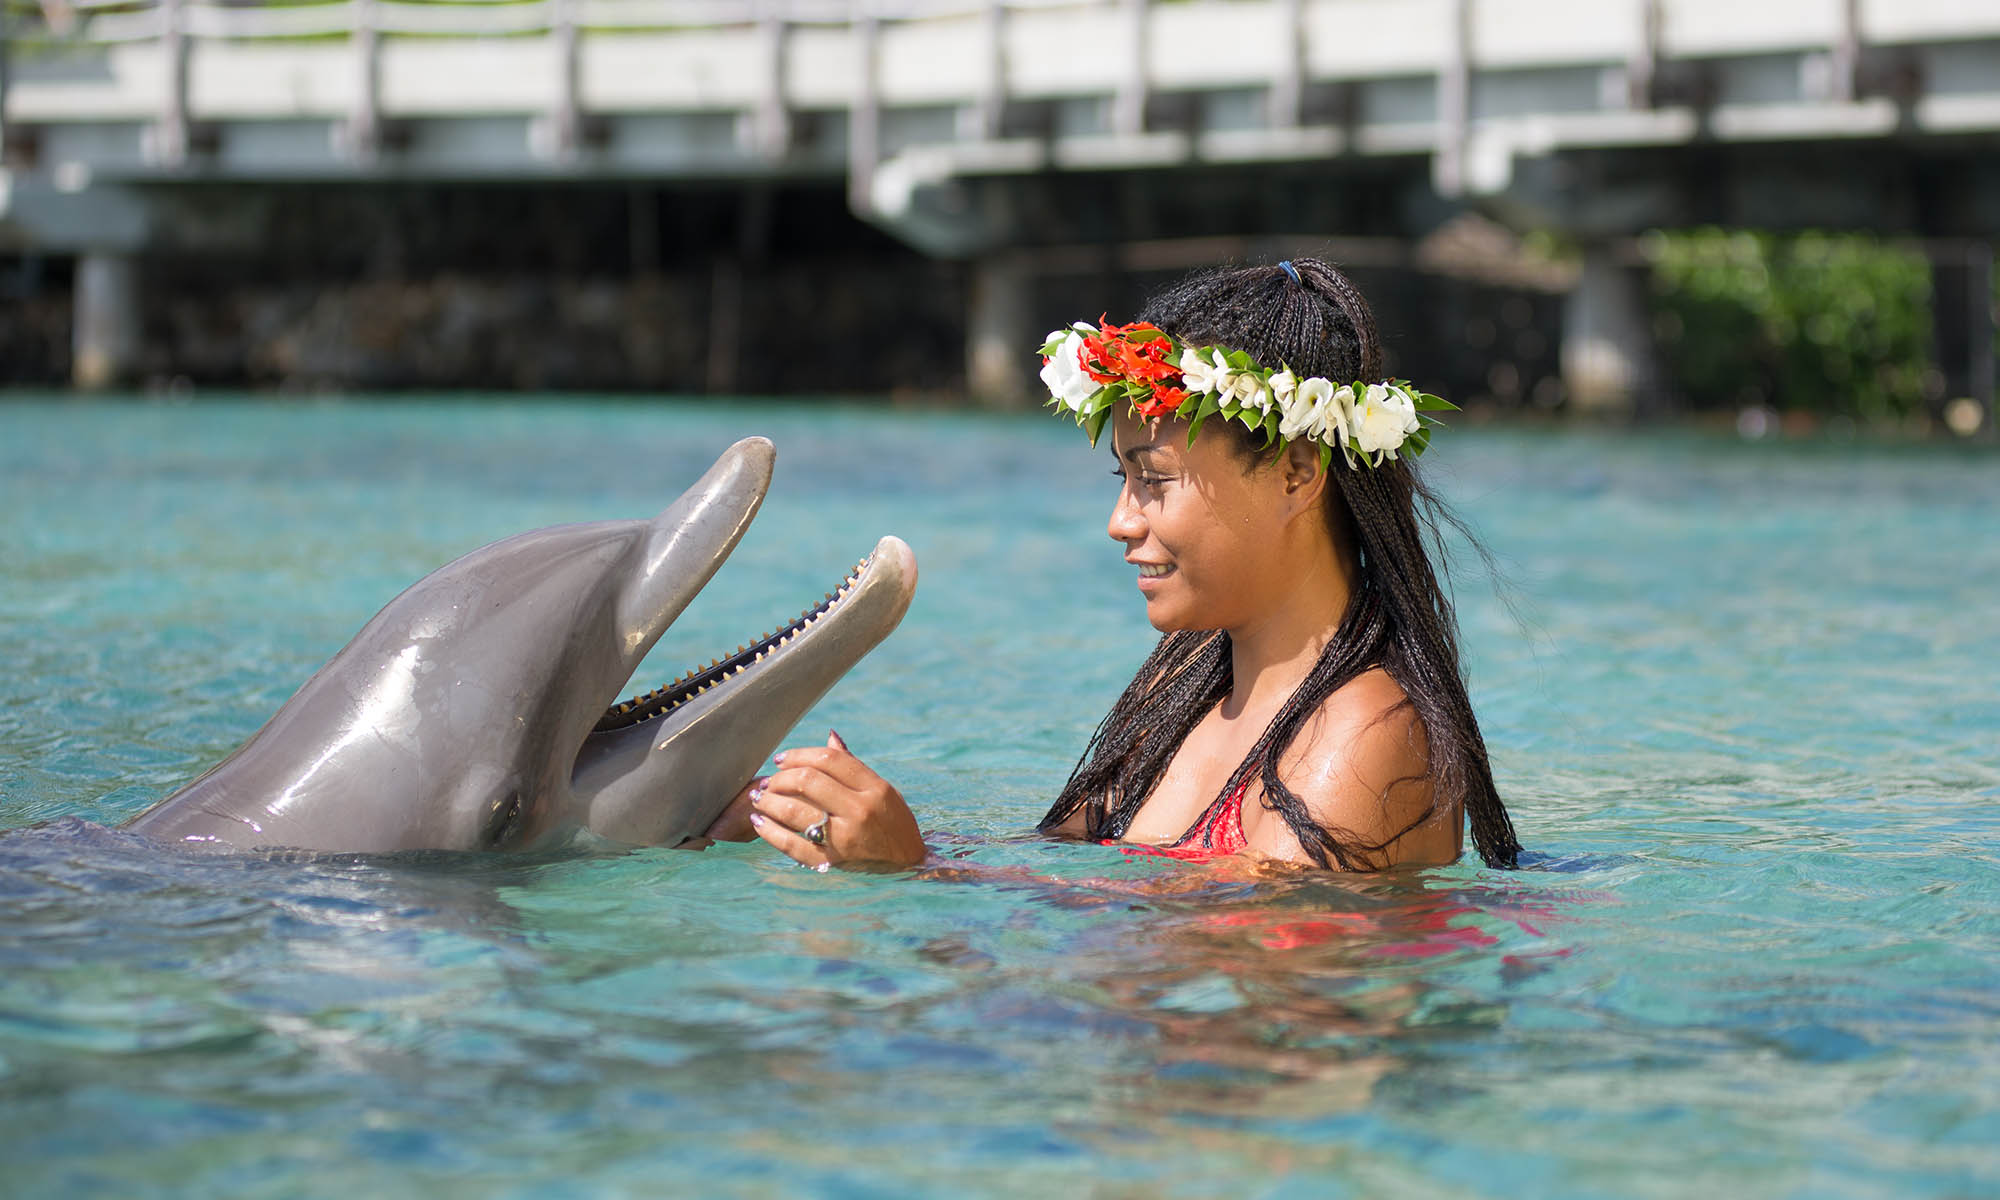 Moorea Dolphin Center, Shallow 'Miti' Encounter